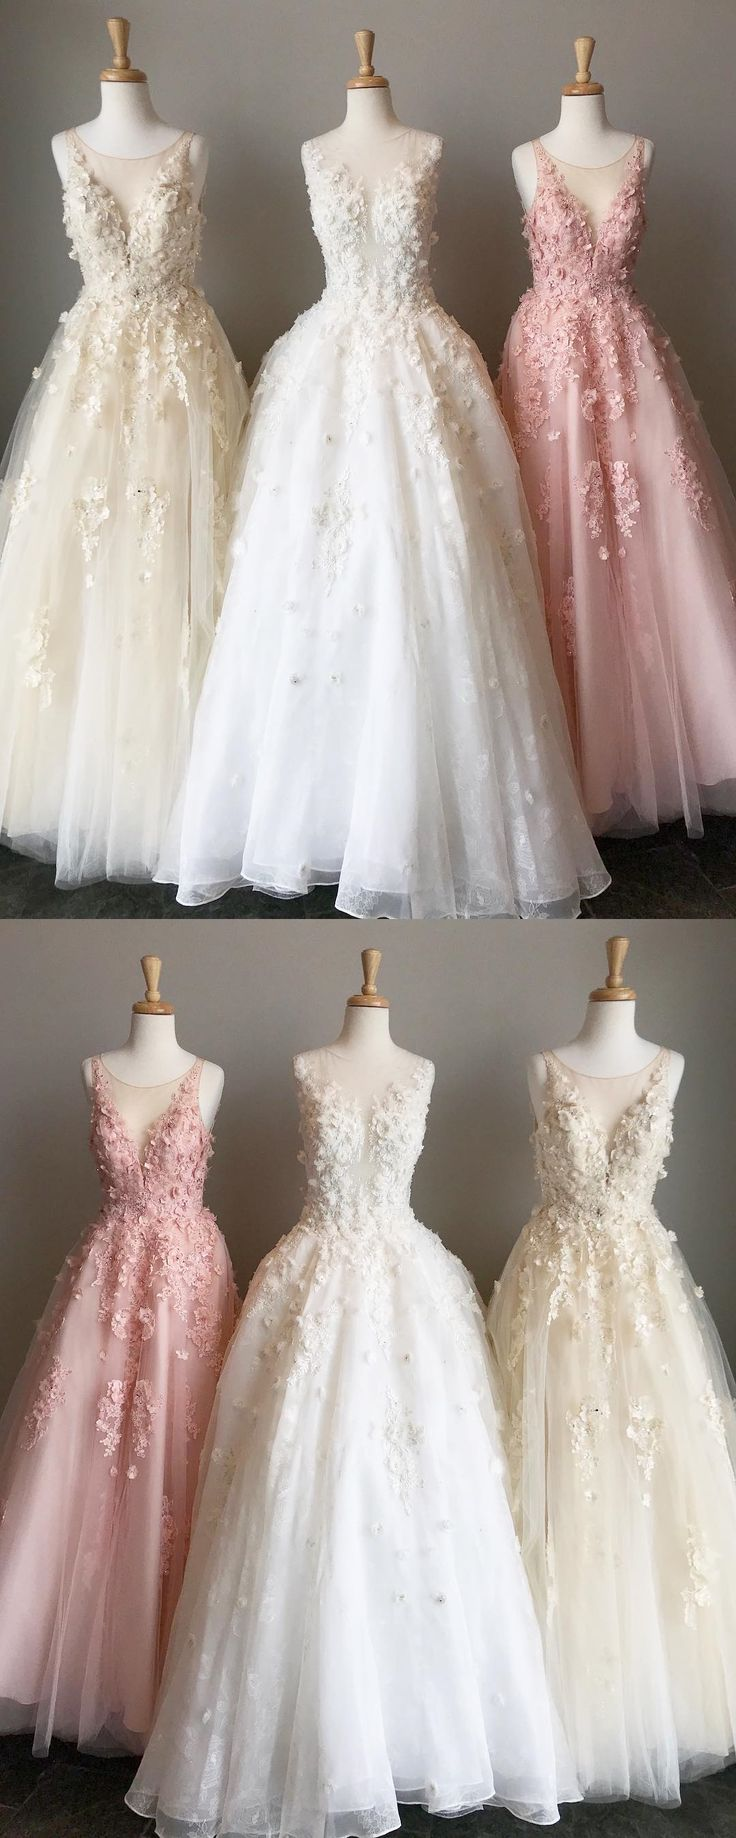 modest pink long prom dresses with appliques, elegant light champagne tulle party dresses, chic round neck white evening gowns